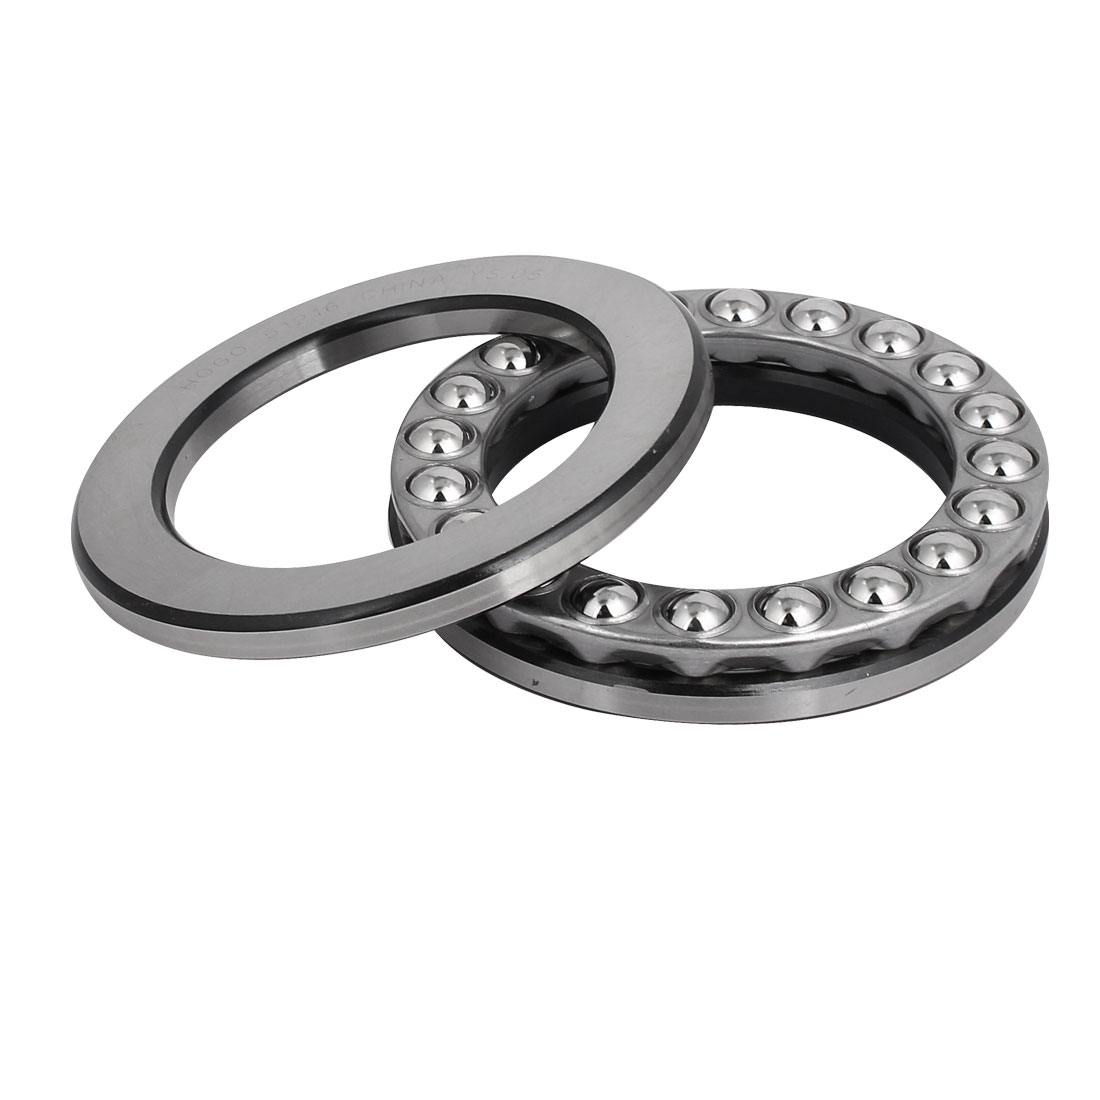 115mmx80mmx28mm Single Row Thrust Ball Bearing Silver Gray 51216